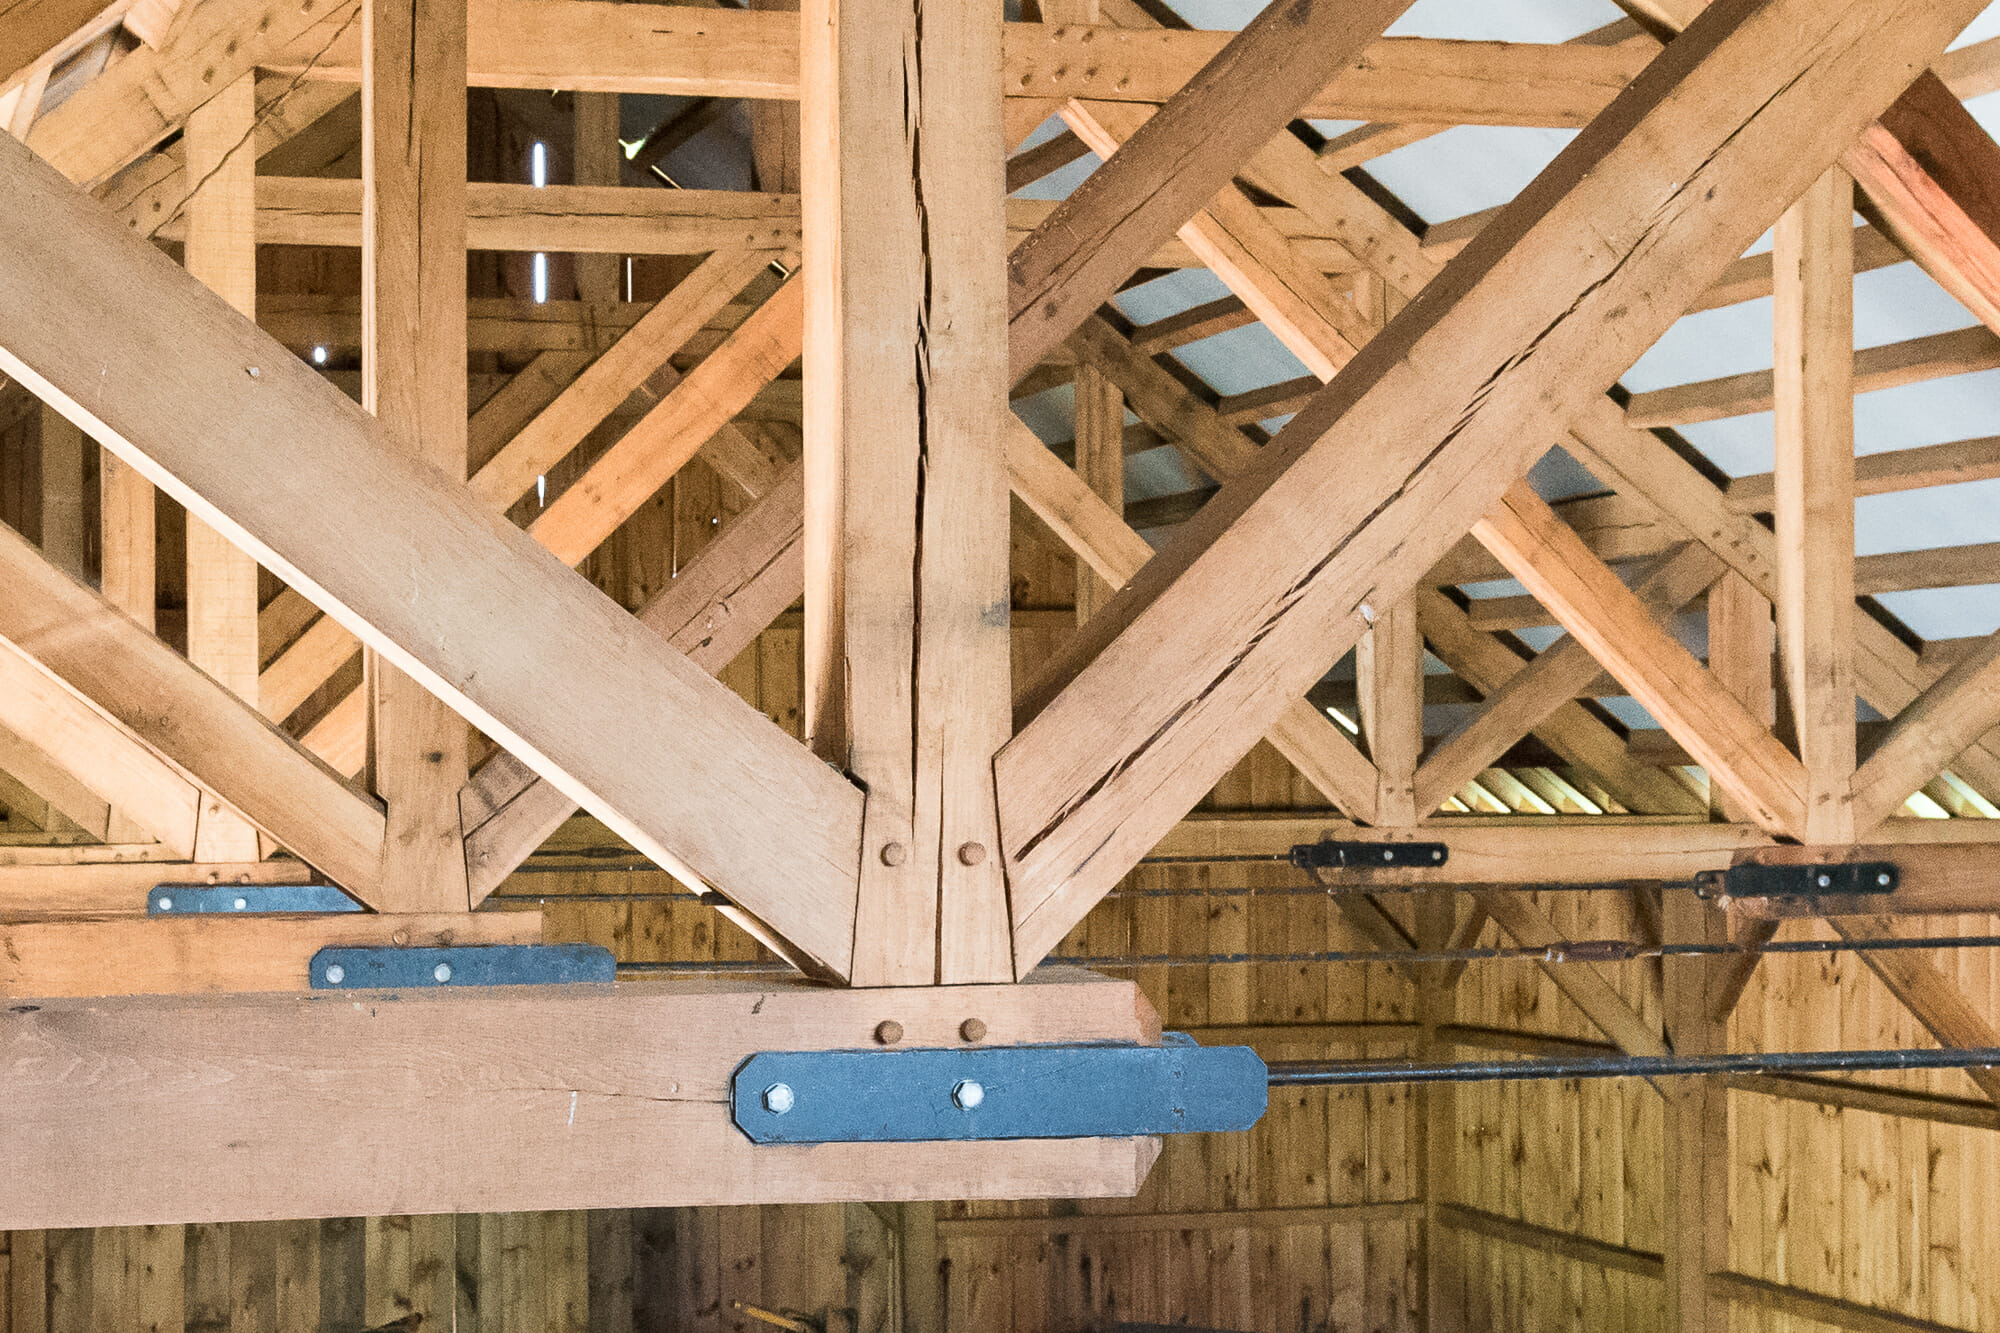 Oak Timber Frame with Steel Tie Rods in Traditional Rich Barn